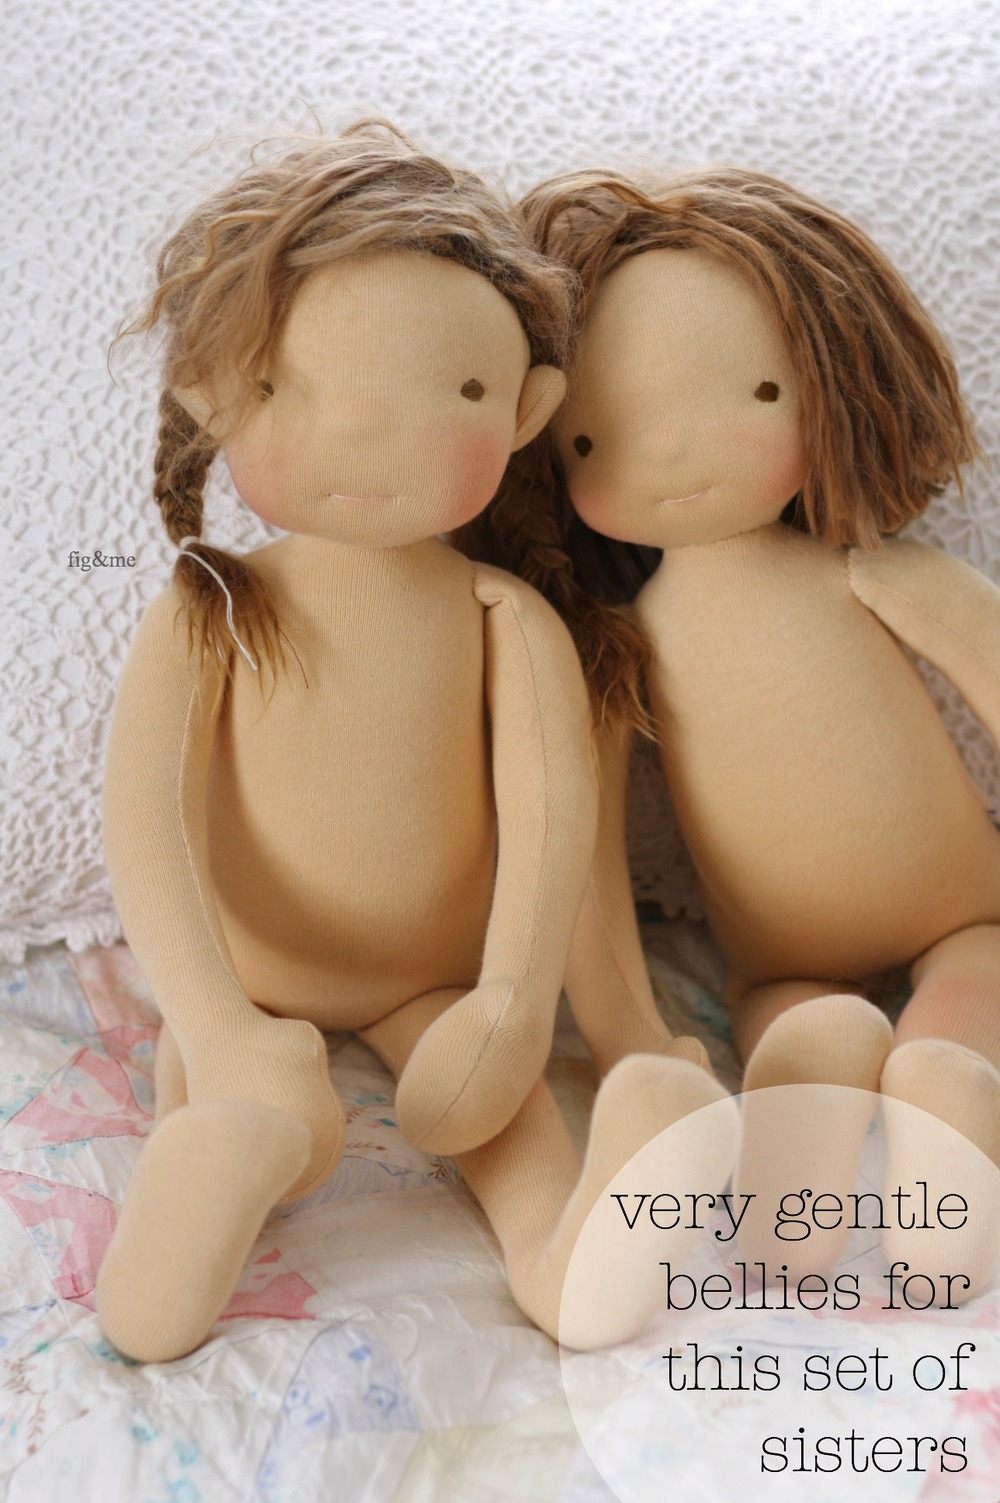 Creating dolls with slight differences to make them more unique, by Fig&me.